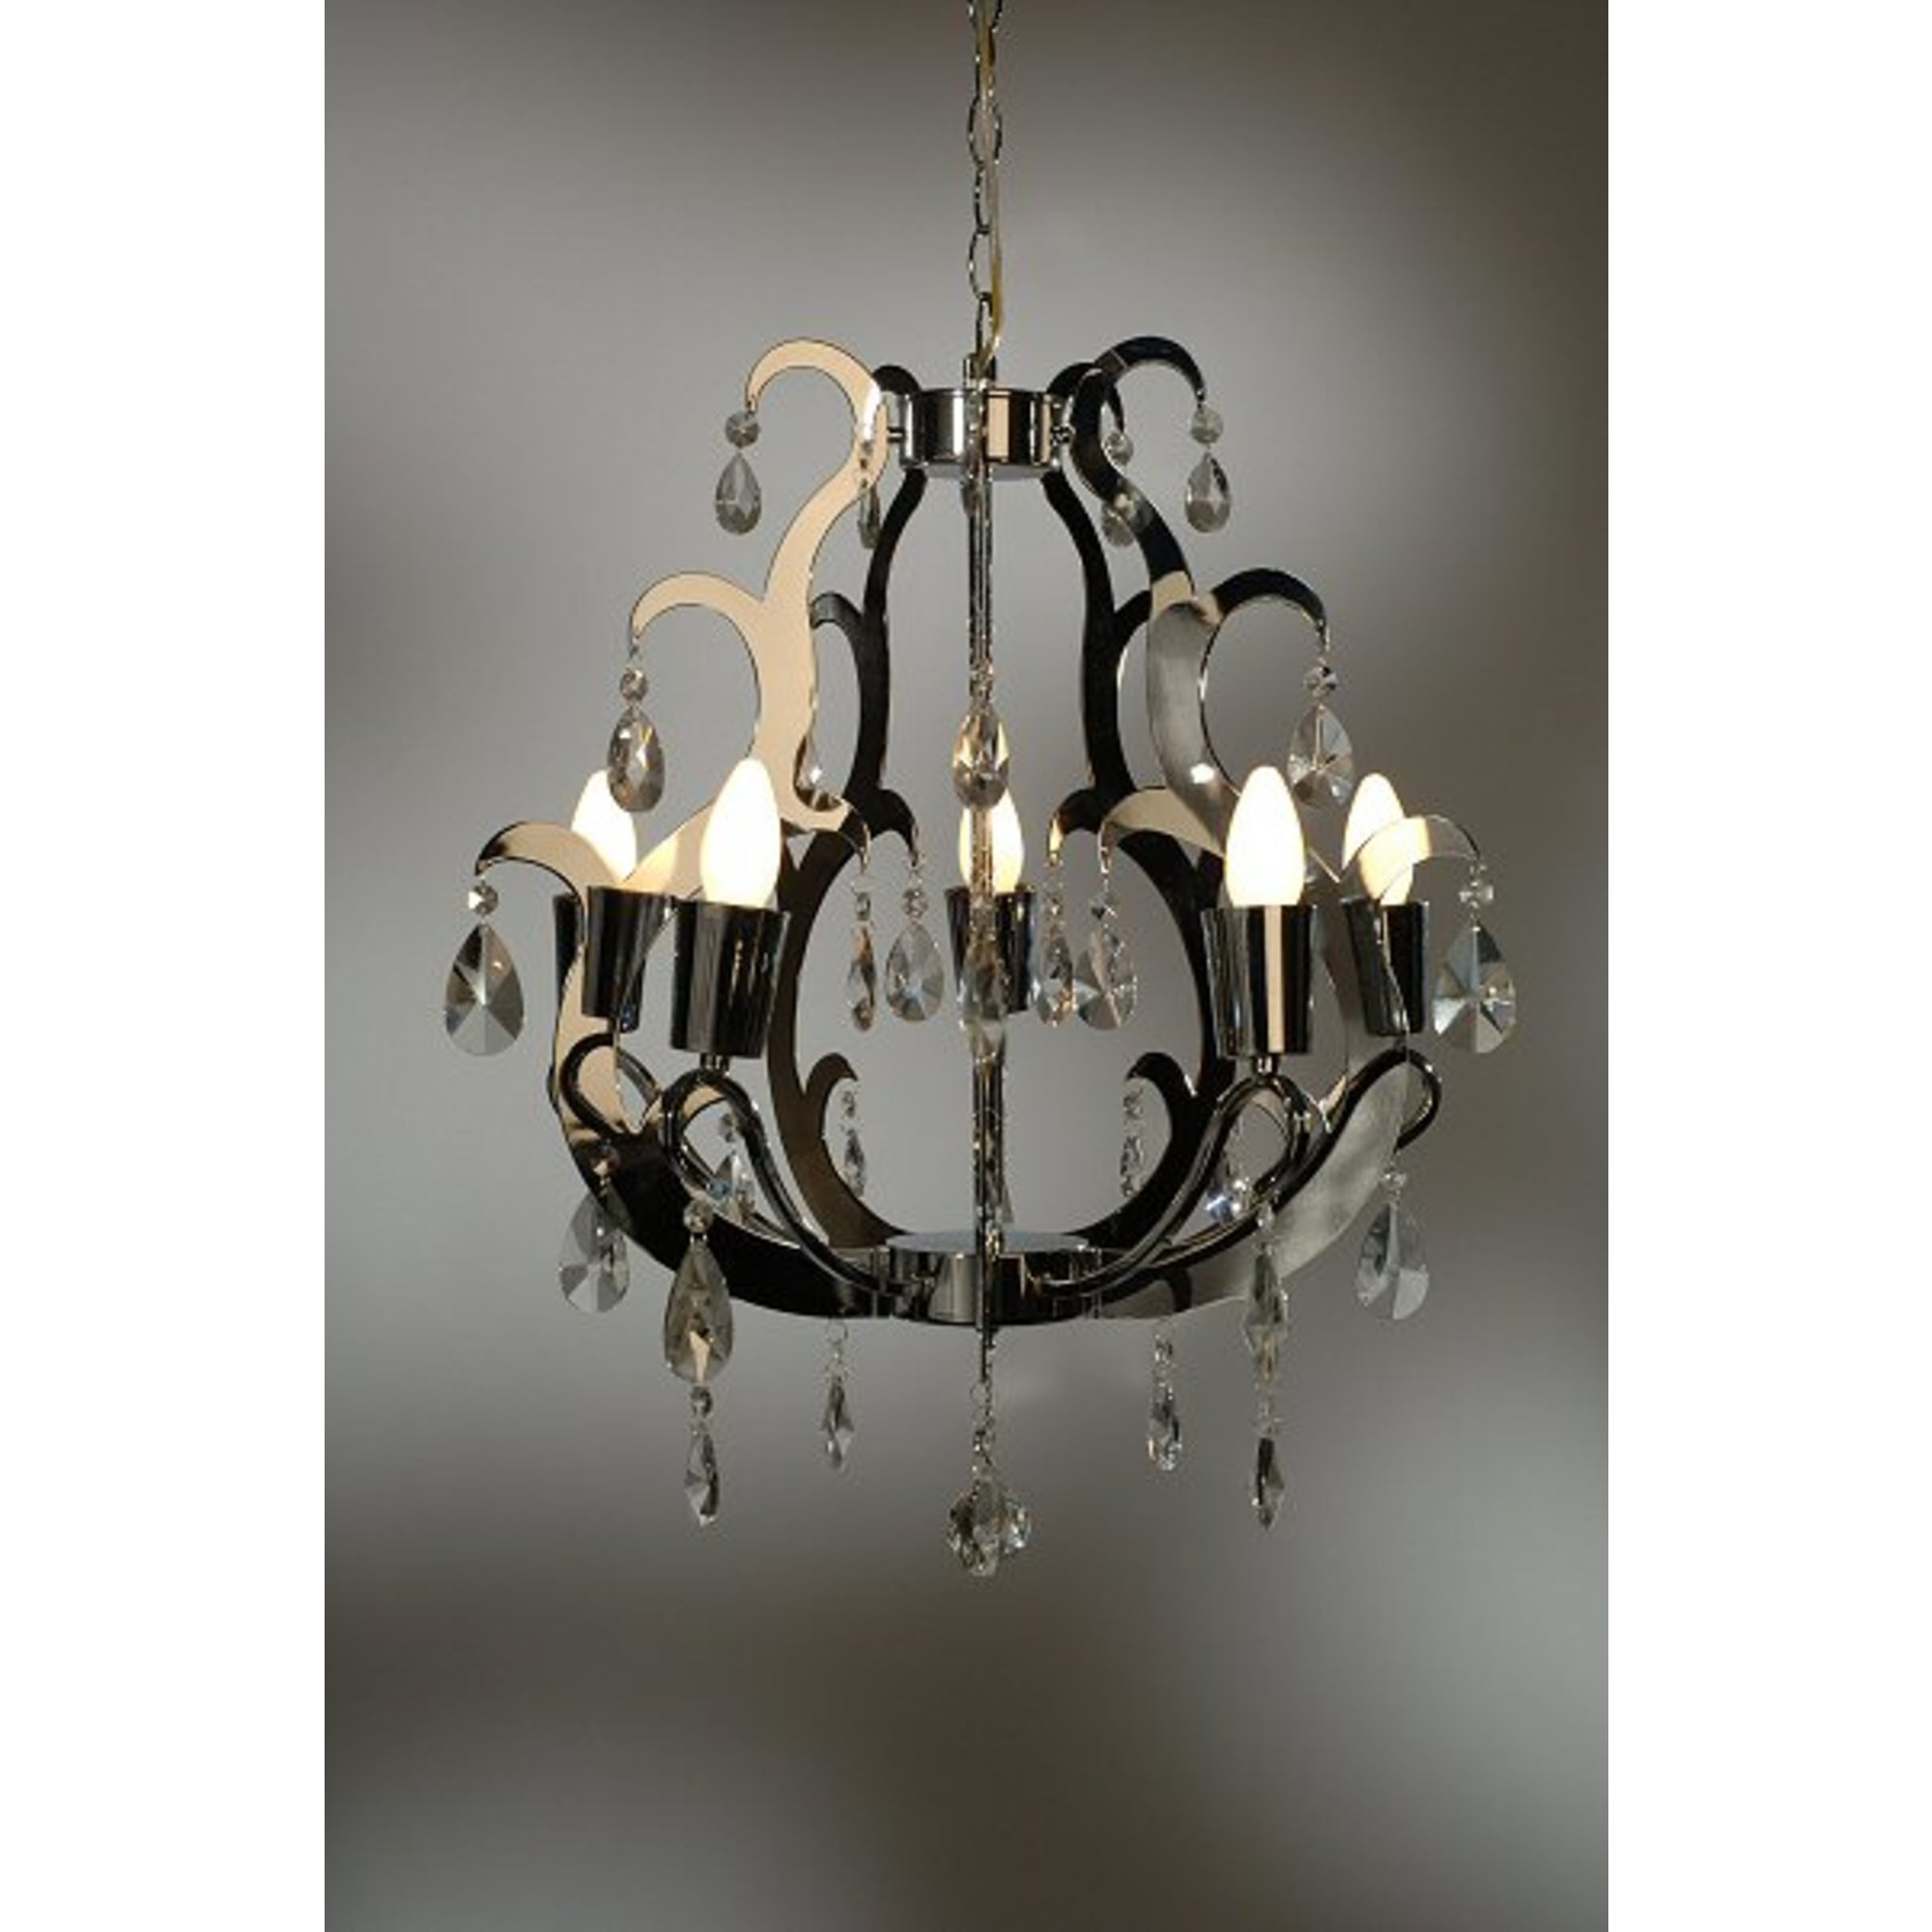 Acrylic Cut 5 Light Chandelier - Chrome and Clear